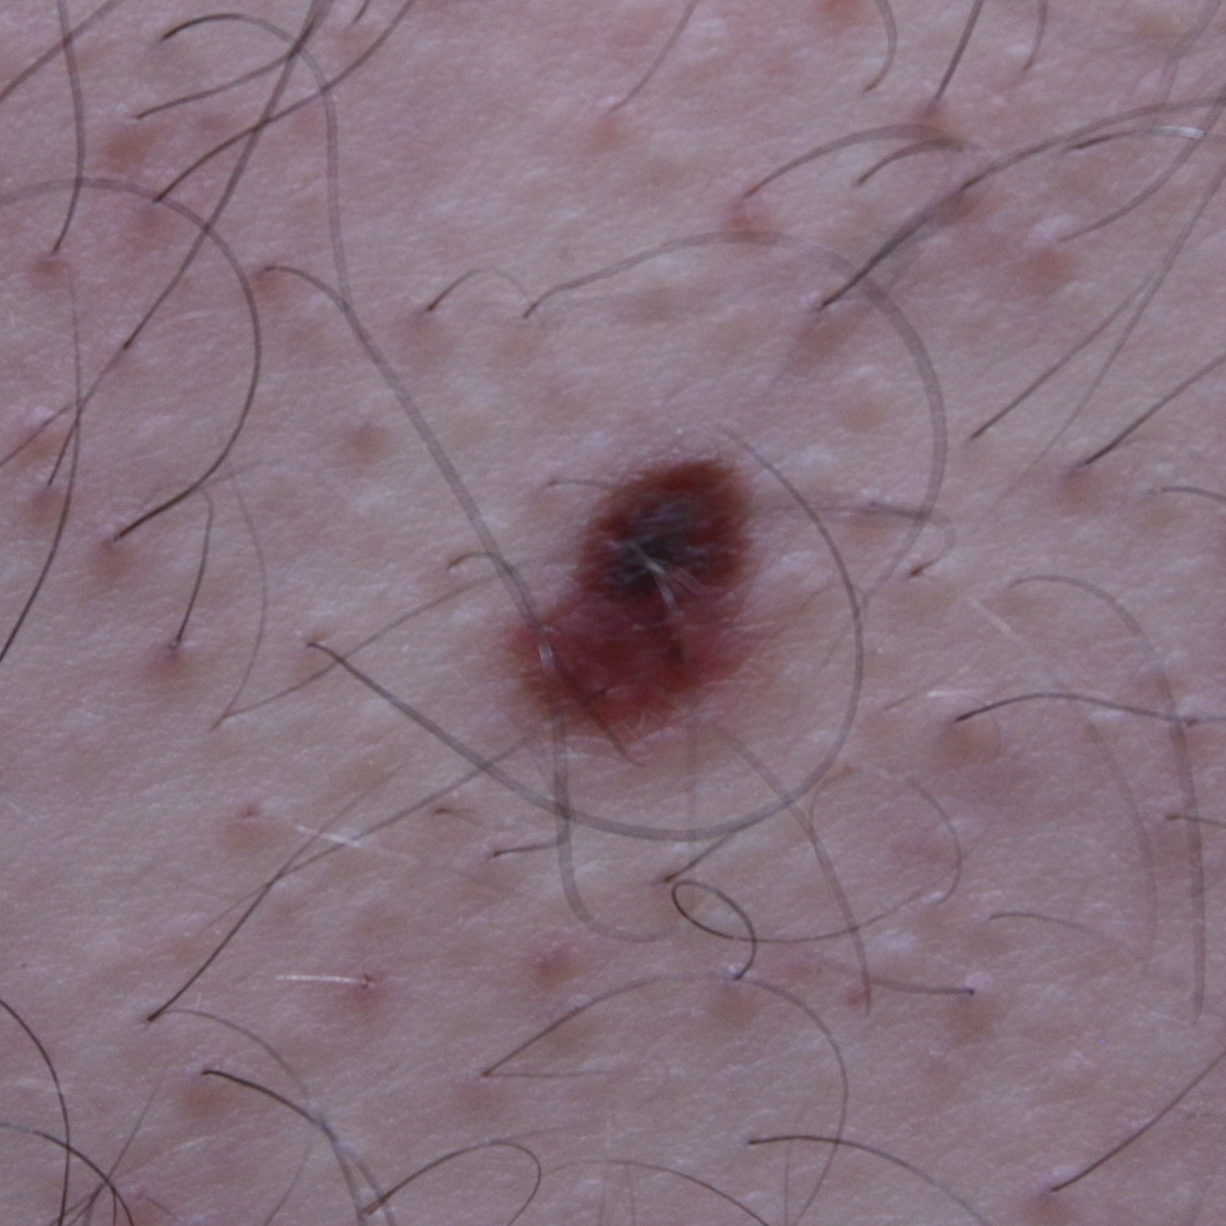 18 YR MALE  This potentially fatal Melanoma was detected through our skin cancer screening